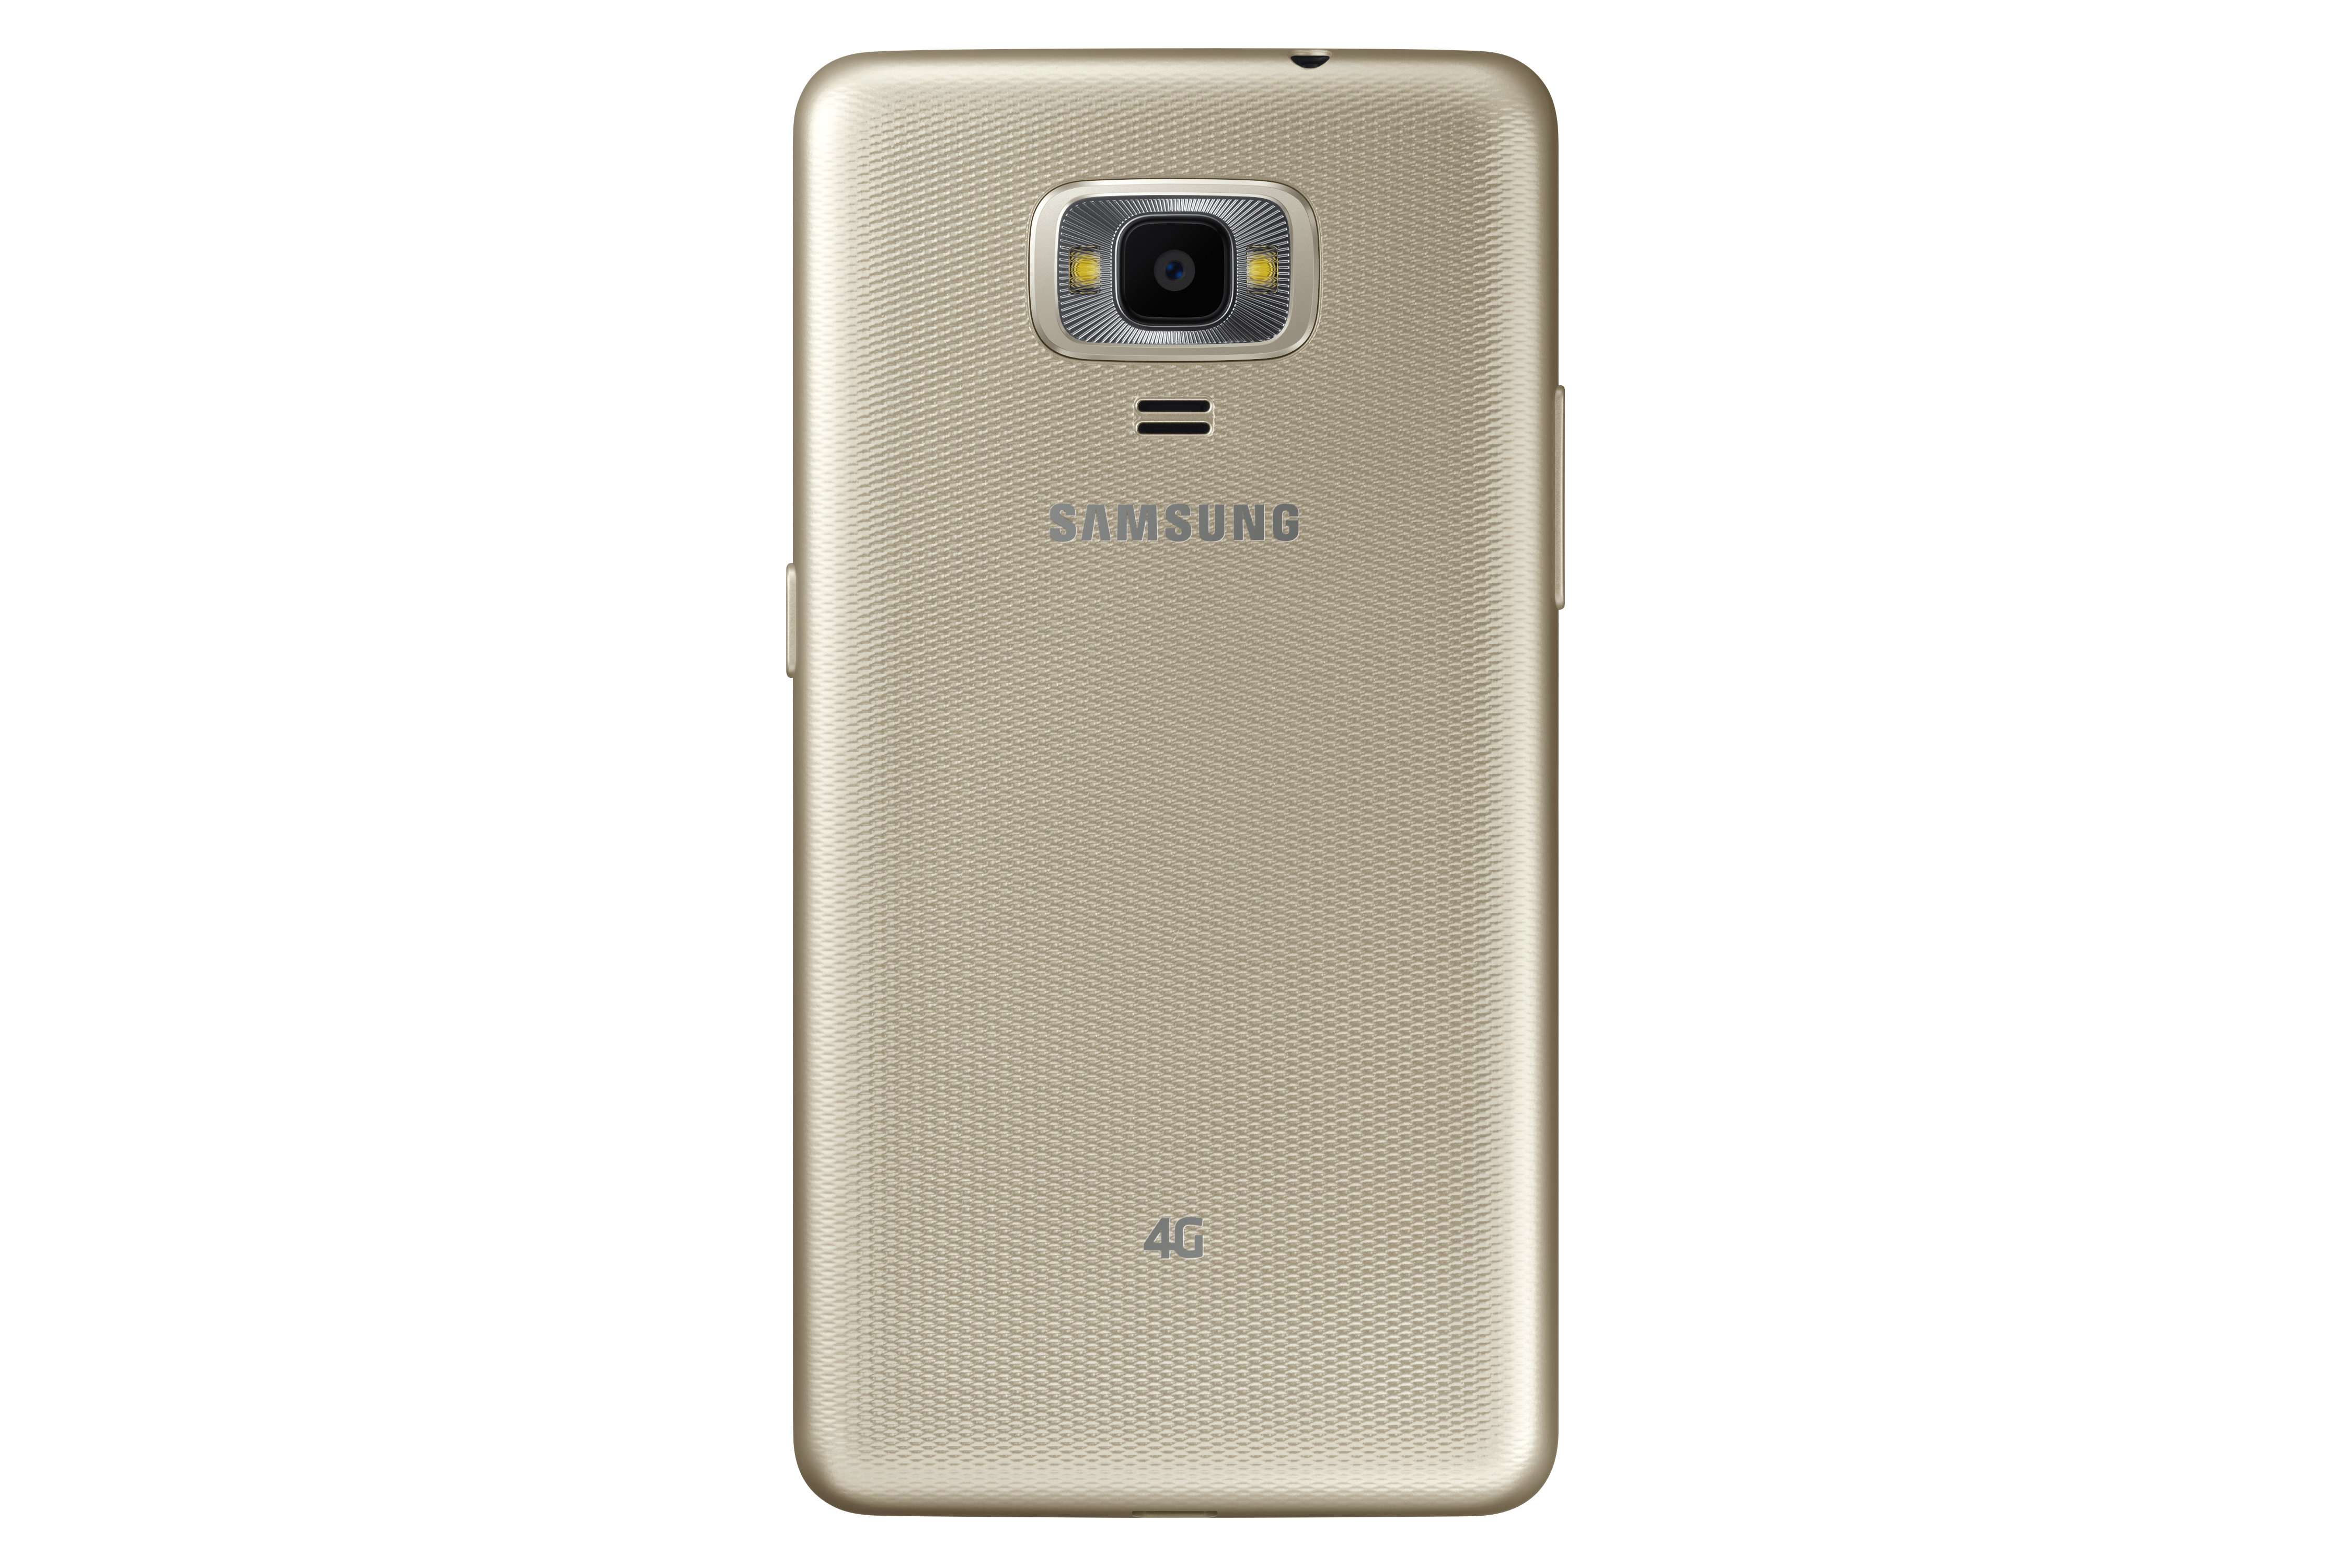 Samsung Launches Z4, Tizen-Powered 4G Smartphone with